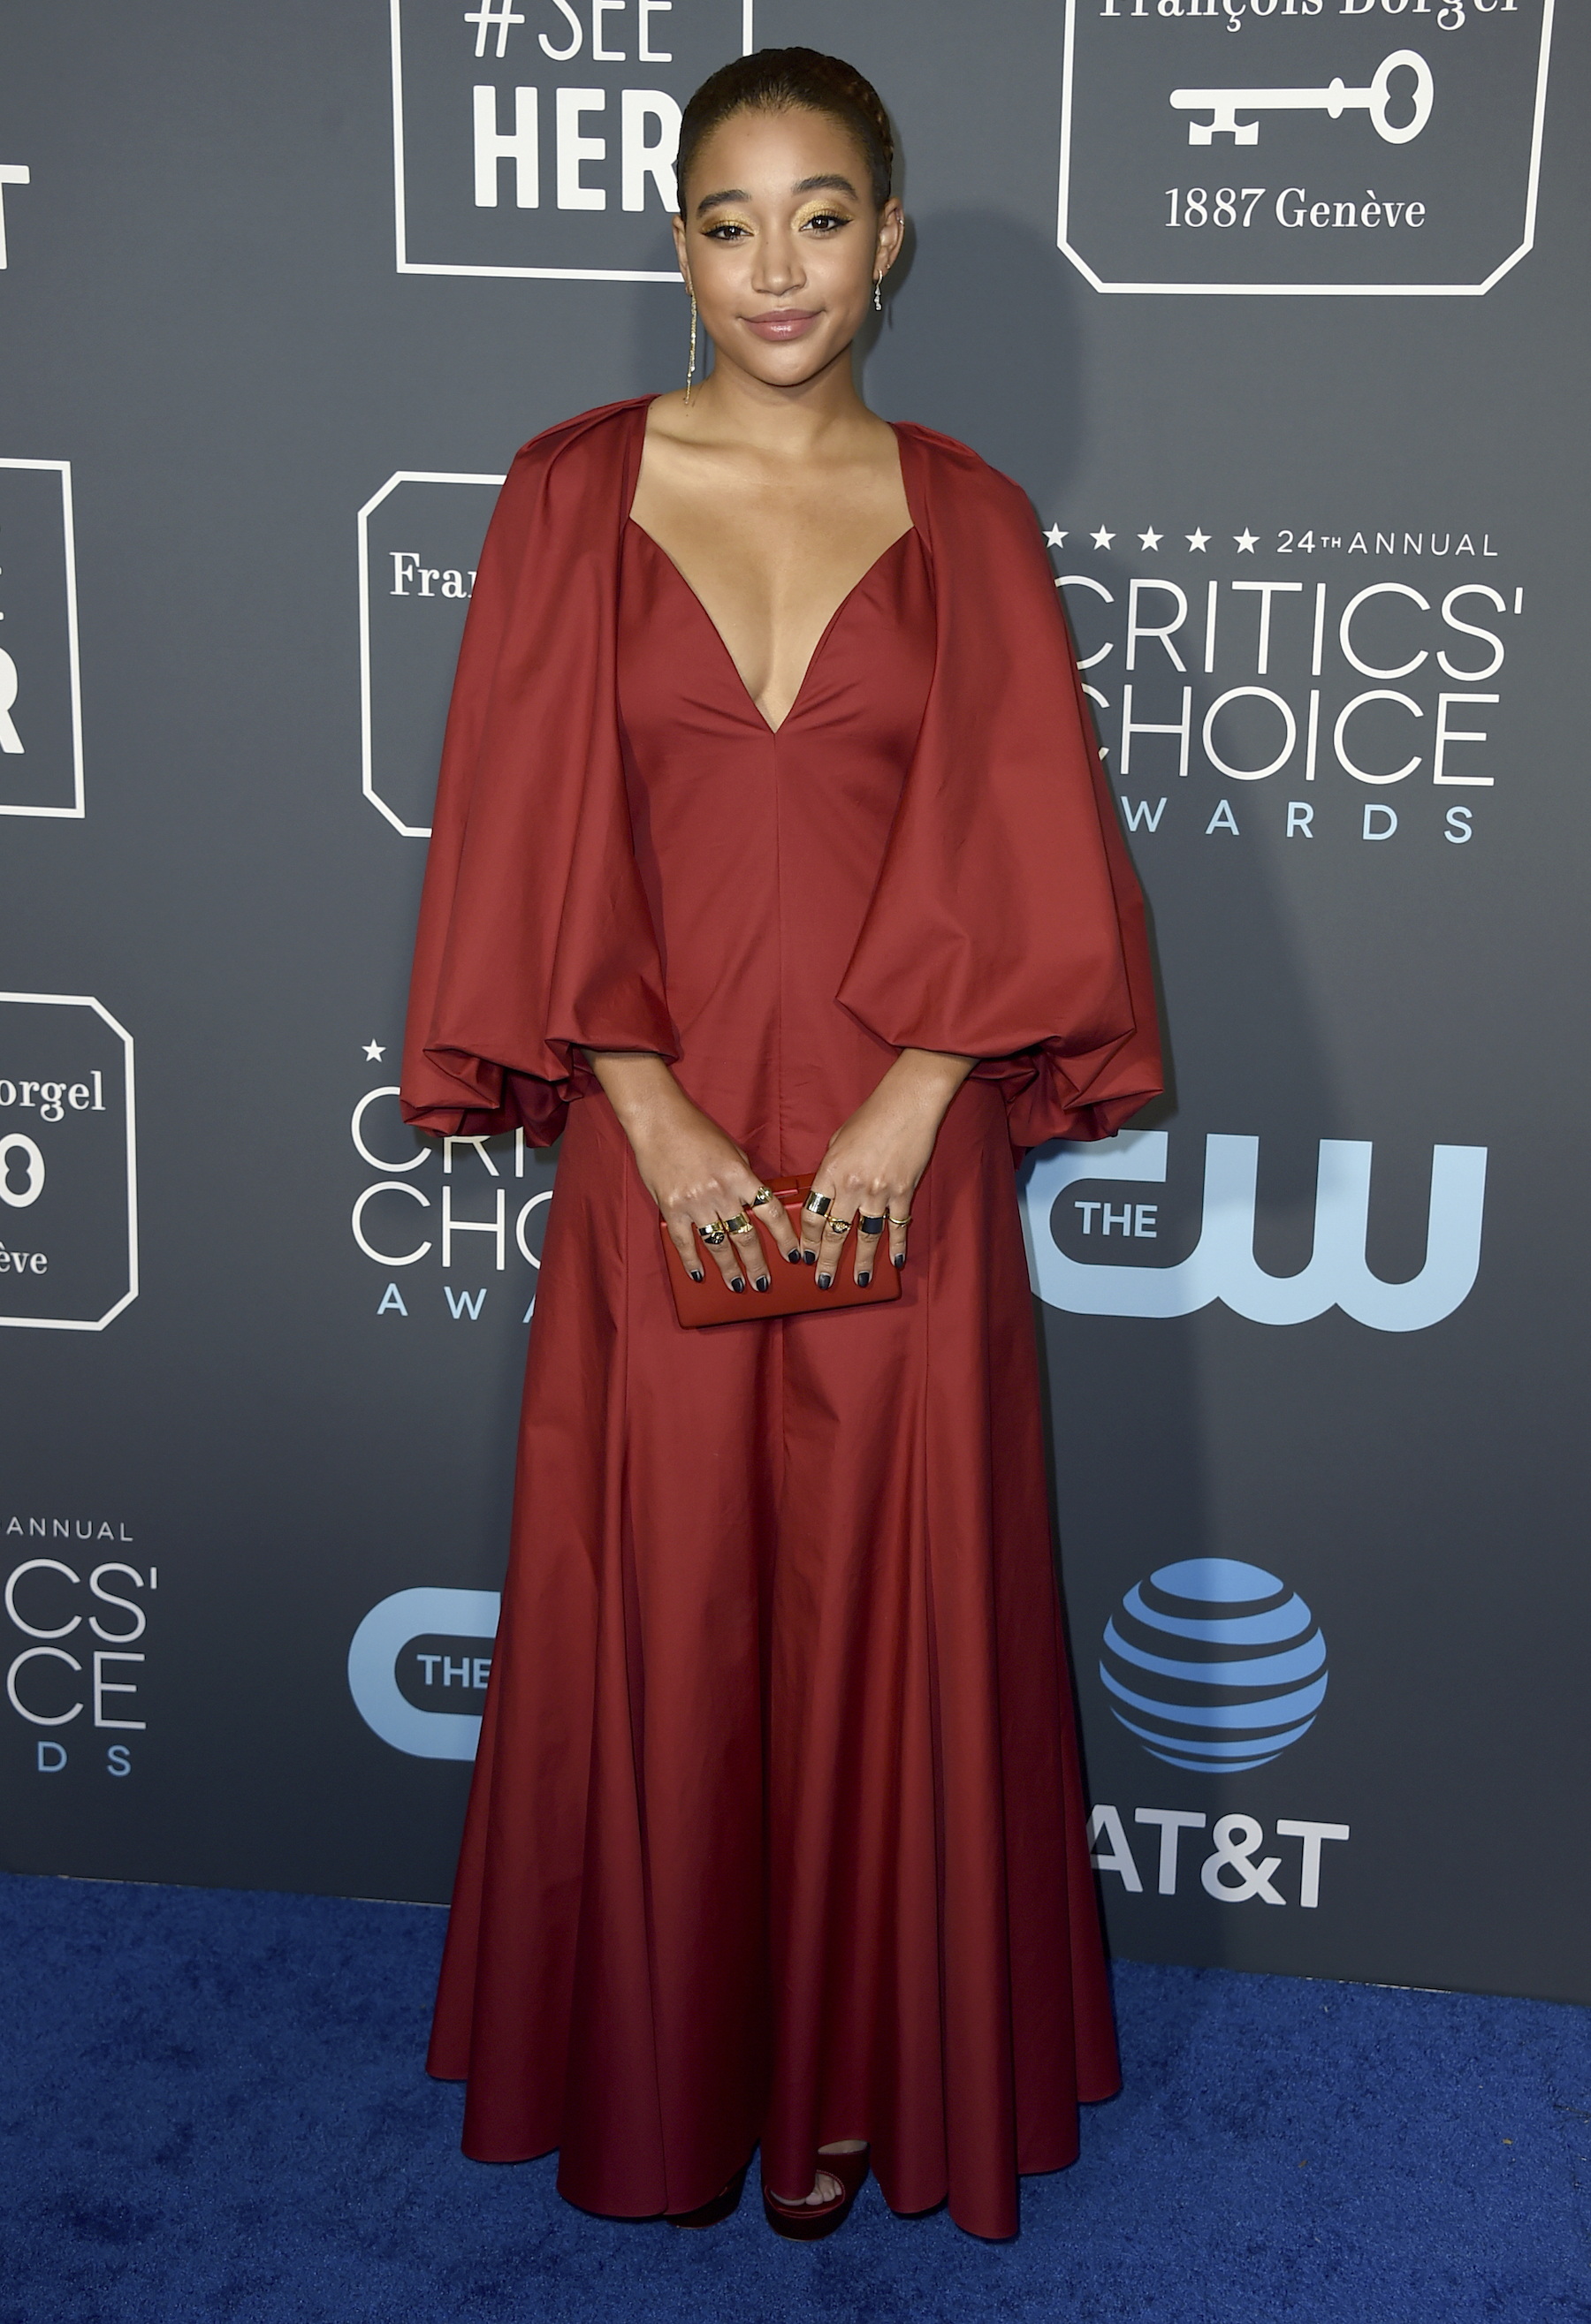 "<div class=""meta image-caption""><div class=""origin-logo origin-image ap""><span>AP</span></div><span class=""caption-text"">Amandla Stenberg arrives at the 24th annual Critics' Choice Awards on Sunday, Jan. 13, 2019, at the Barker Hangar in Santa Monica, Calif. (Jordan Strauss/Invision/AP)</span></div>"